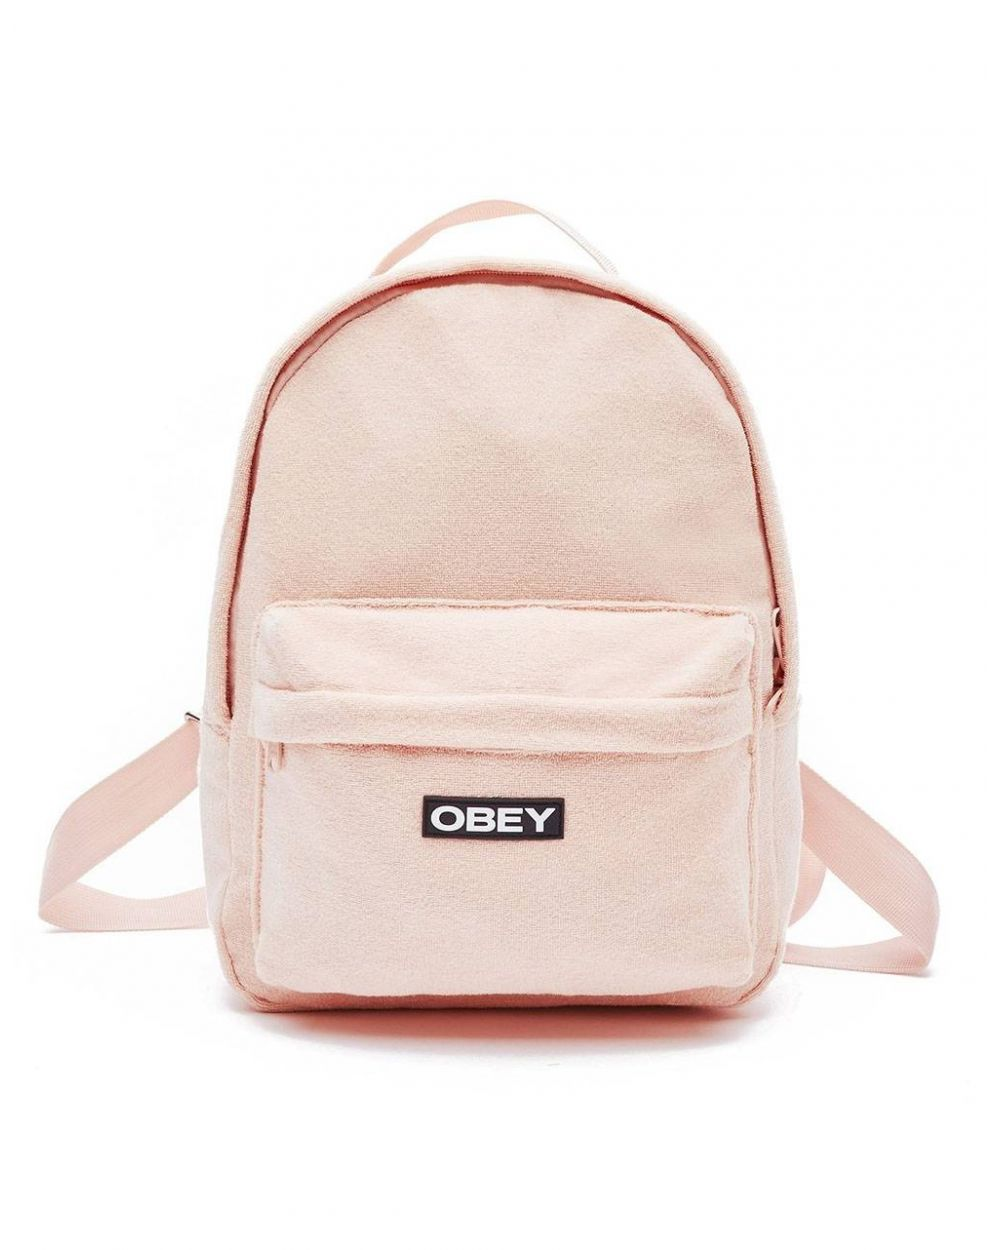 Obey Woman Ozark backpack - champagne obey Bags 65,57€